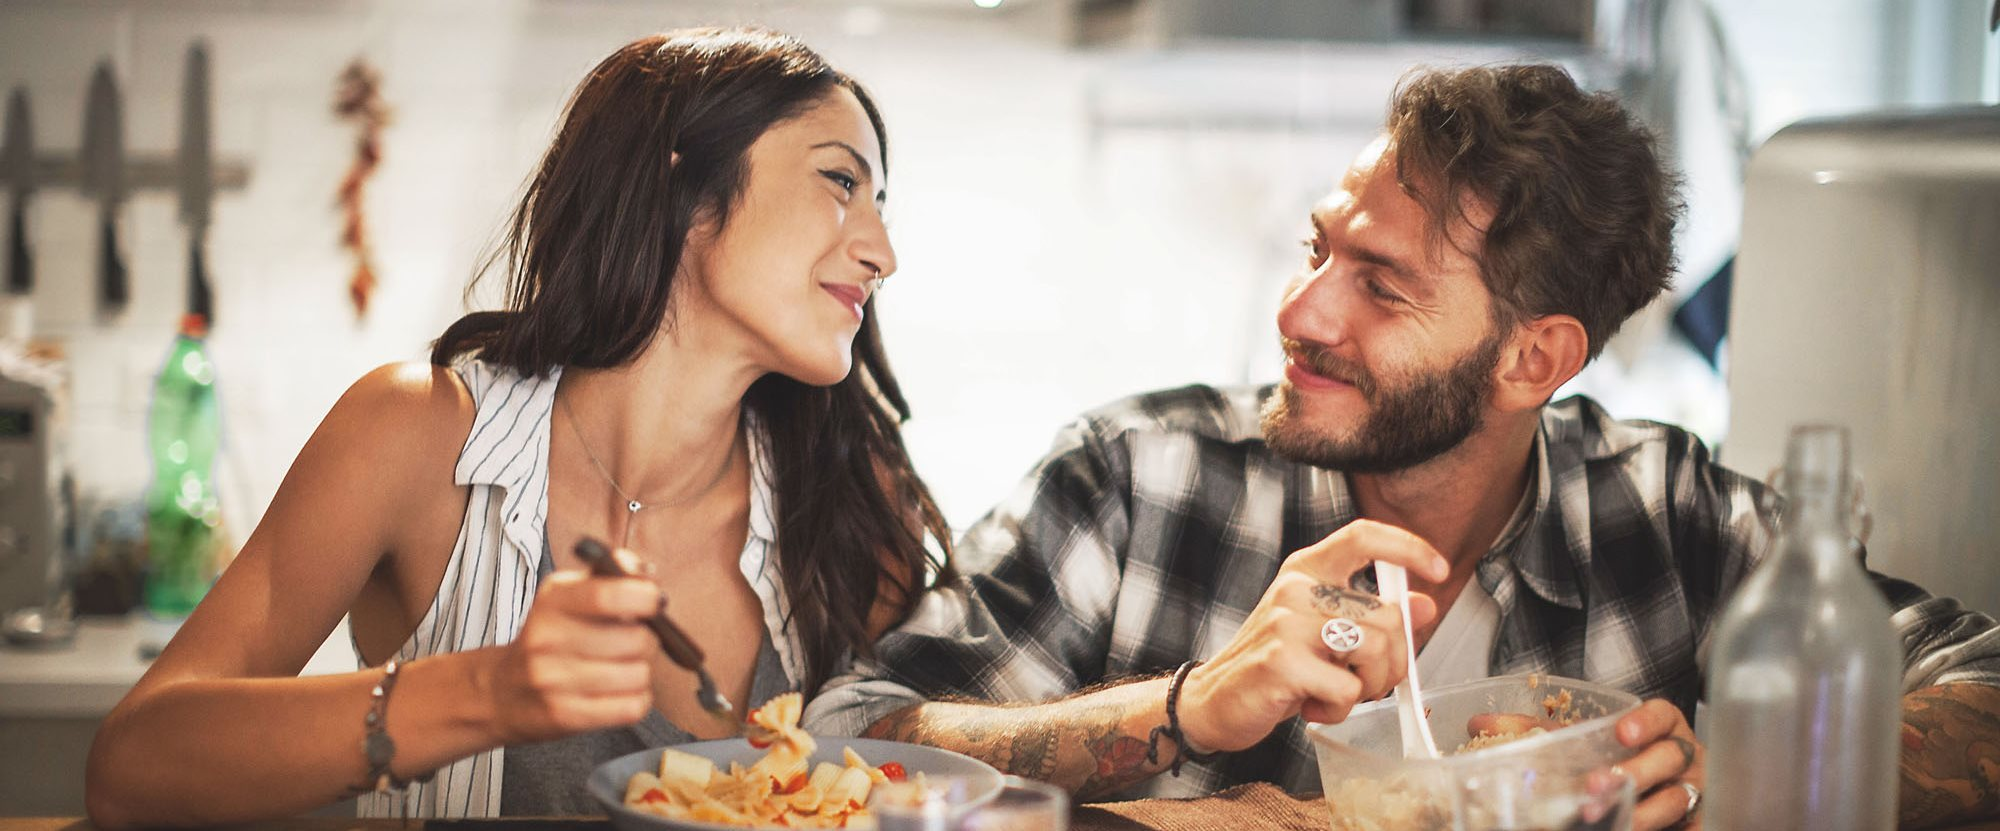 stock image- couple eating